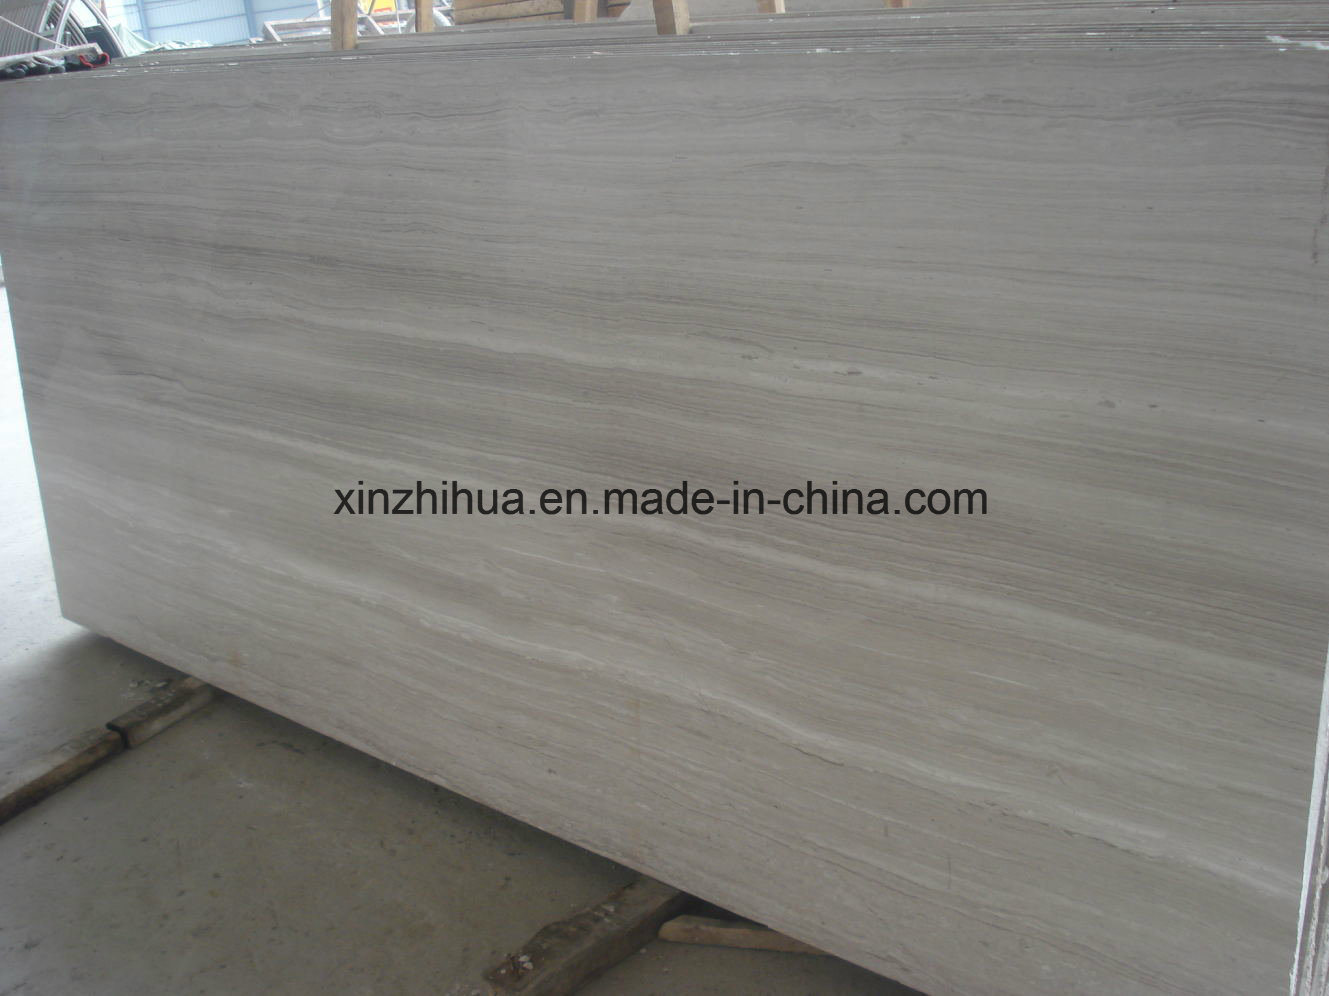 High Quality White Wood Marble, Timber White, Wooden White, Building Material Grain Marble